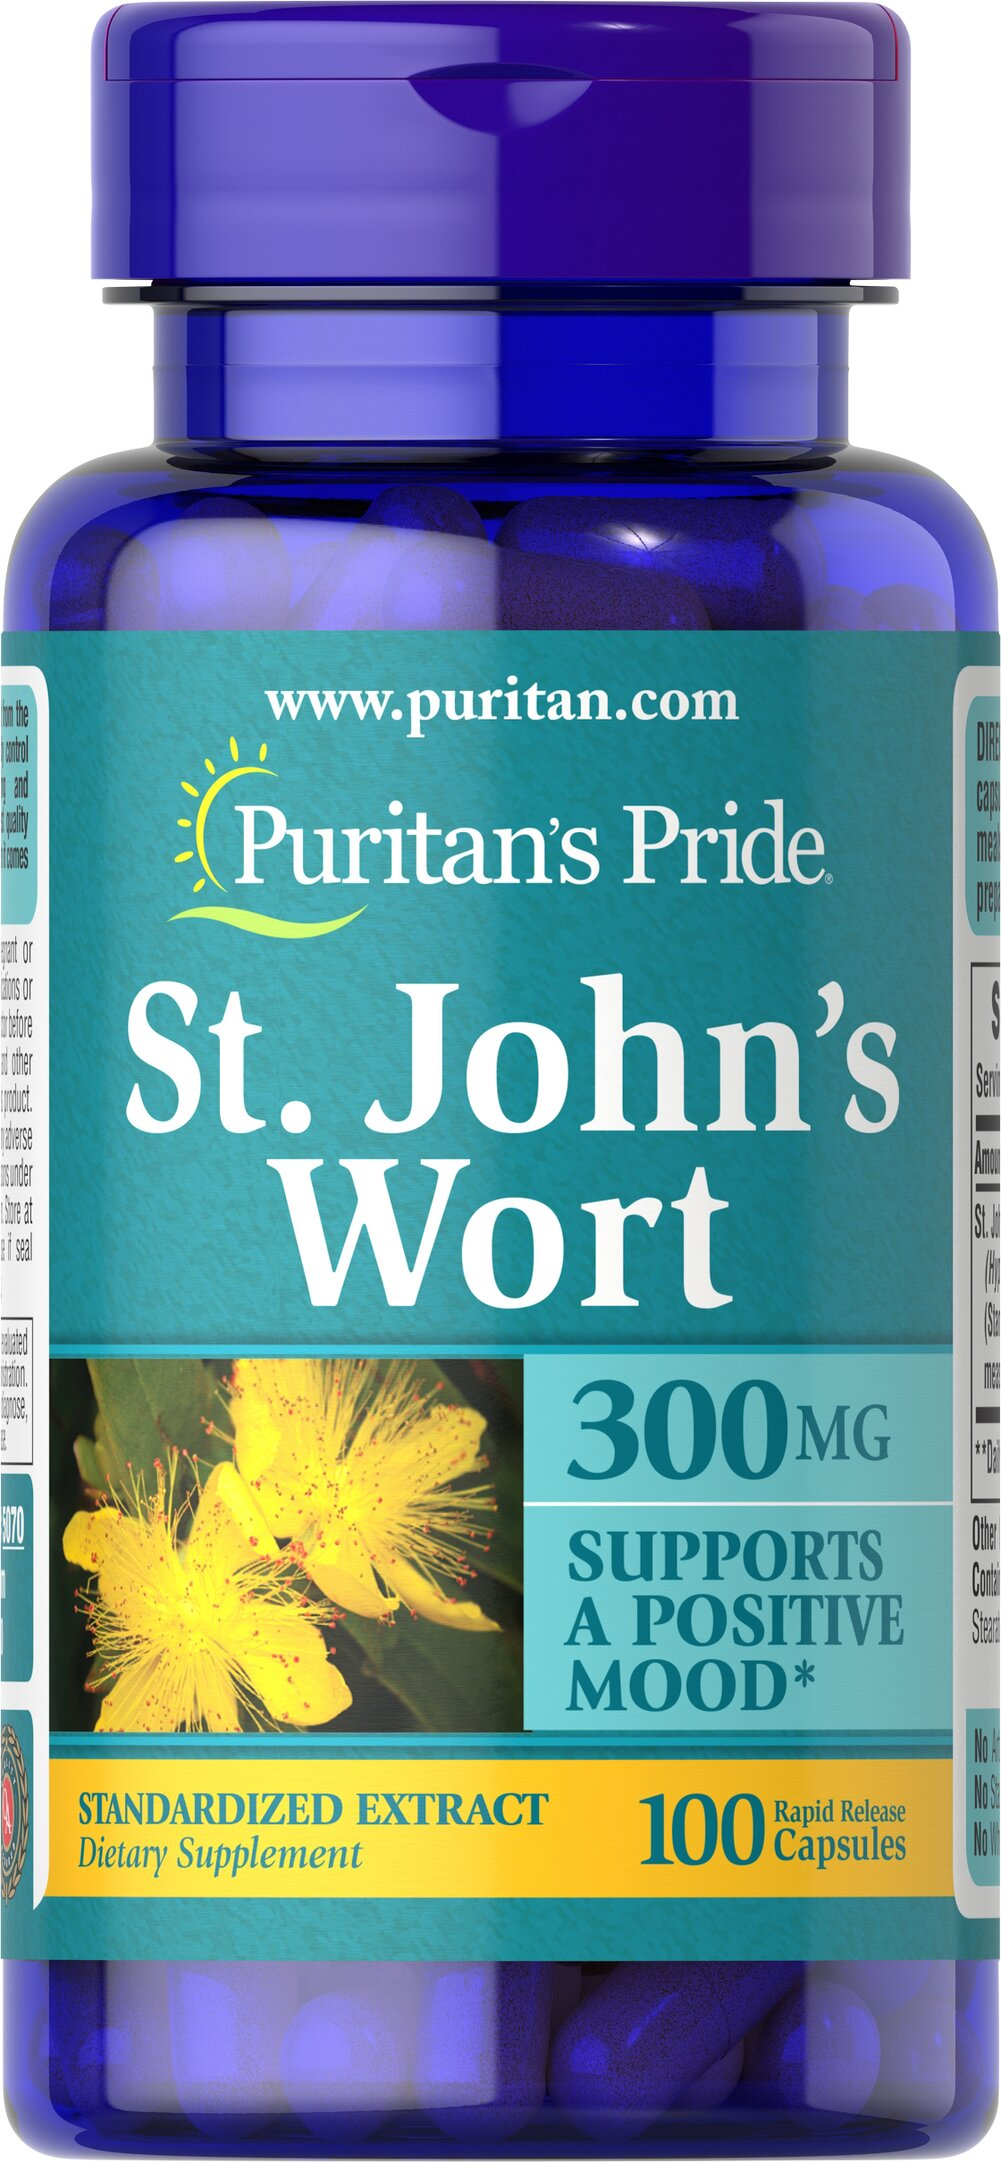 St. John's Wort Standardized Extract 300 mg <p>St. John's Wort has been used for centuries as a tonic and is clinically proven to promote mental well-being and peaceful mood.** At 900 milligrams per day, St. John's Wort can help maintain a positive mood and is perfect for anyone experiencing occasional anxiety and everyday stress.**</p> 100 Capsules 300 mg $10.48